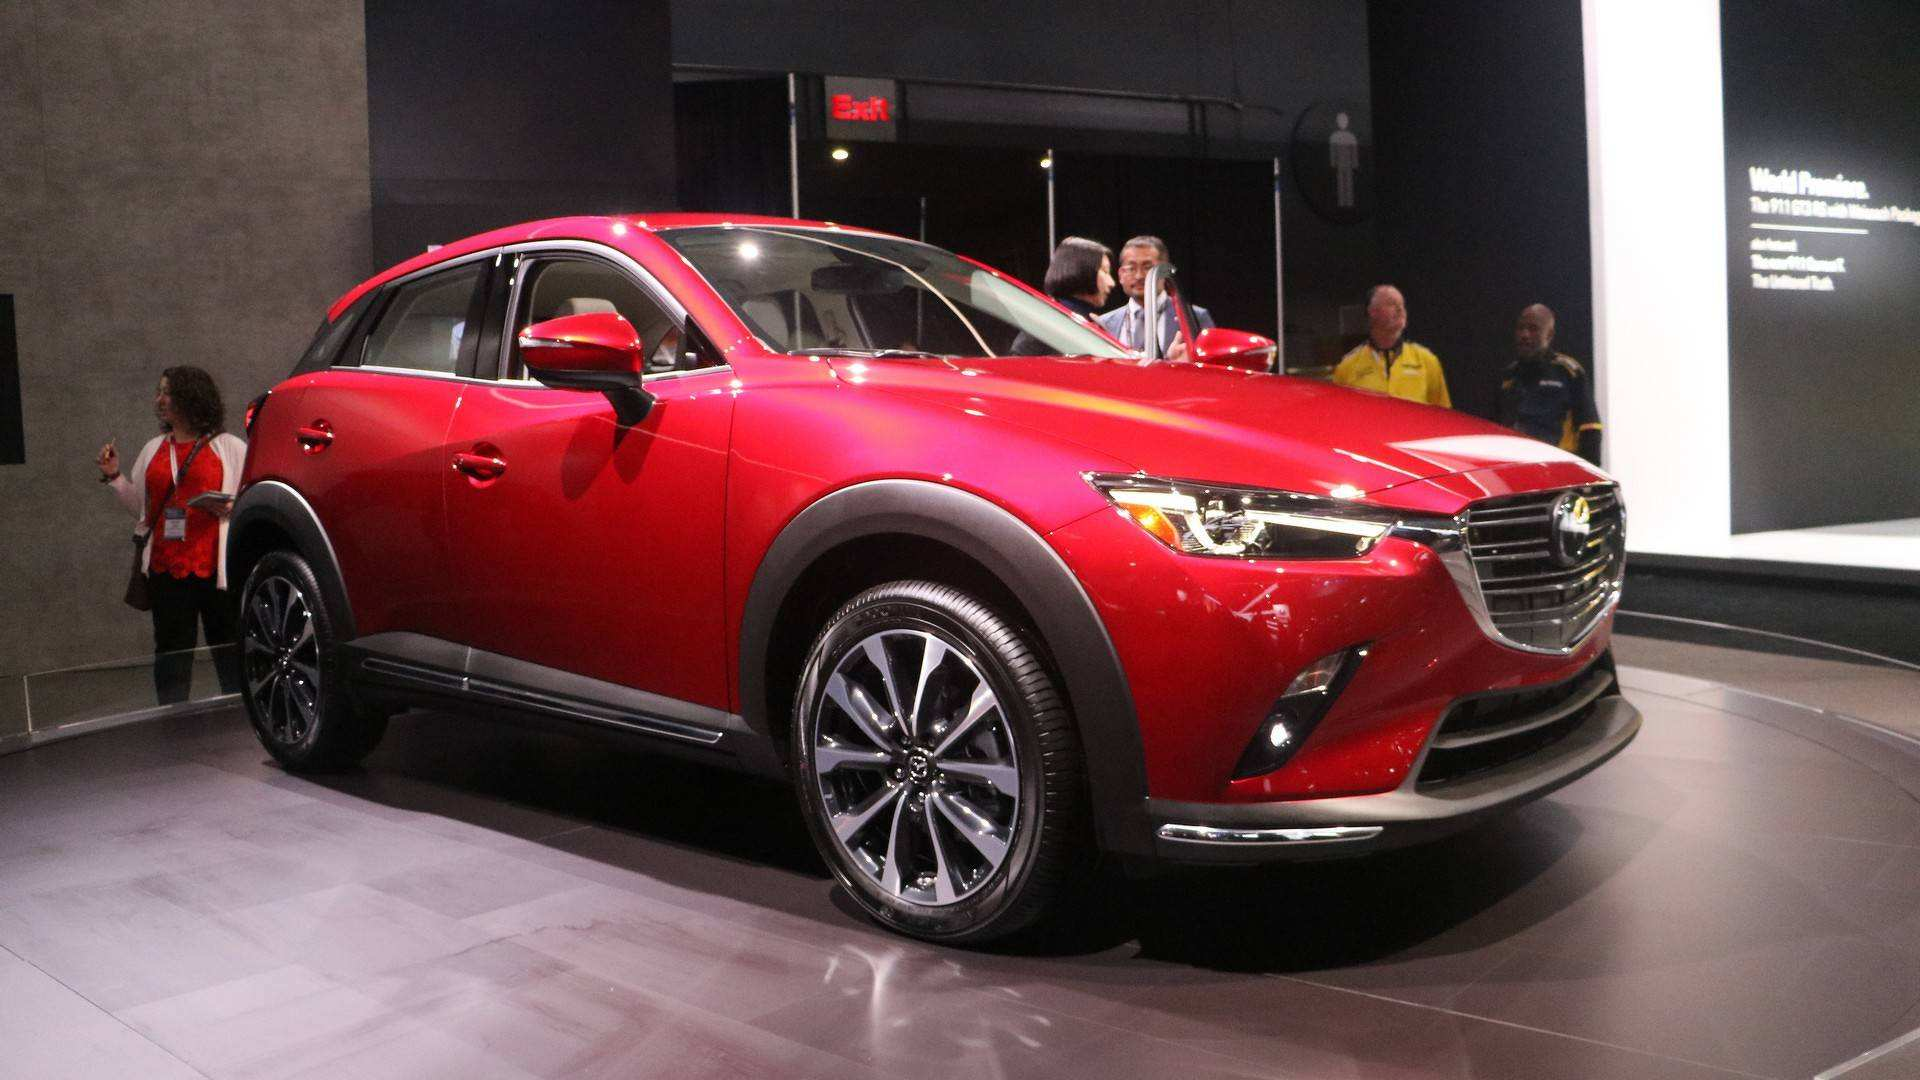 29 Best Review The Mazda 2019 Engine New Interior Reviews for The Mazda 2019 Engine New Interior